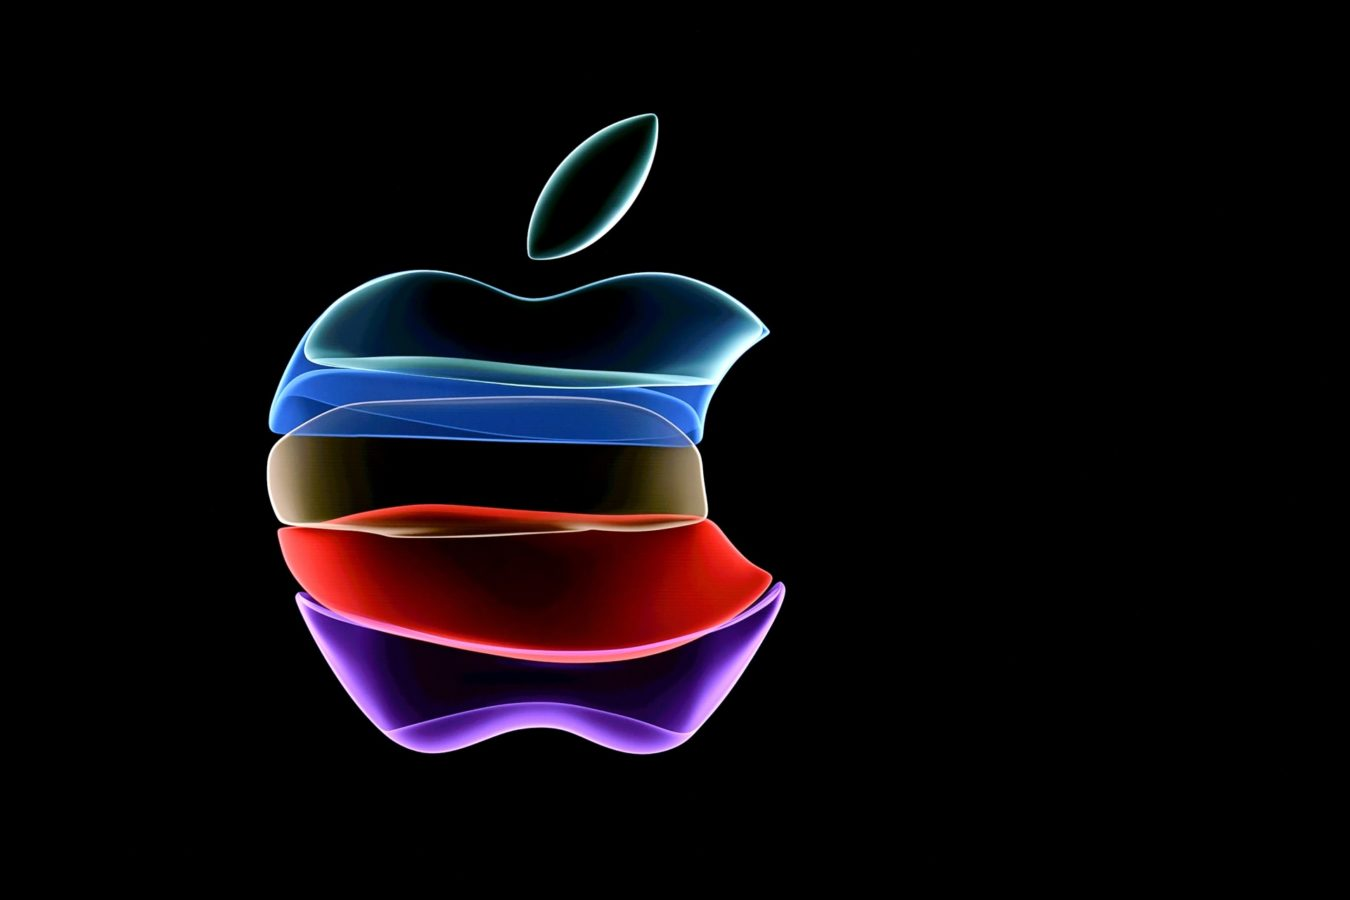 Apple bundles TV, music, news and more in services push